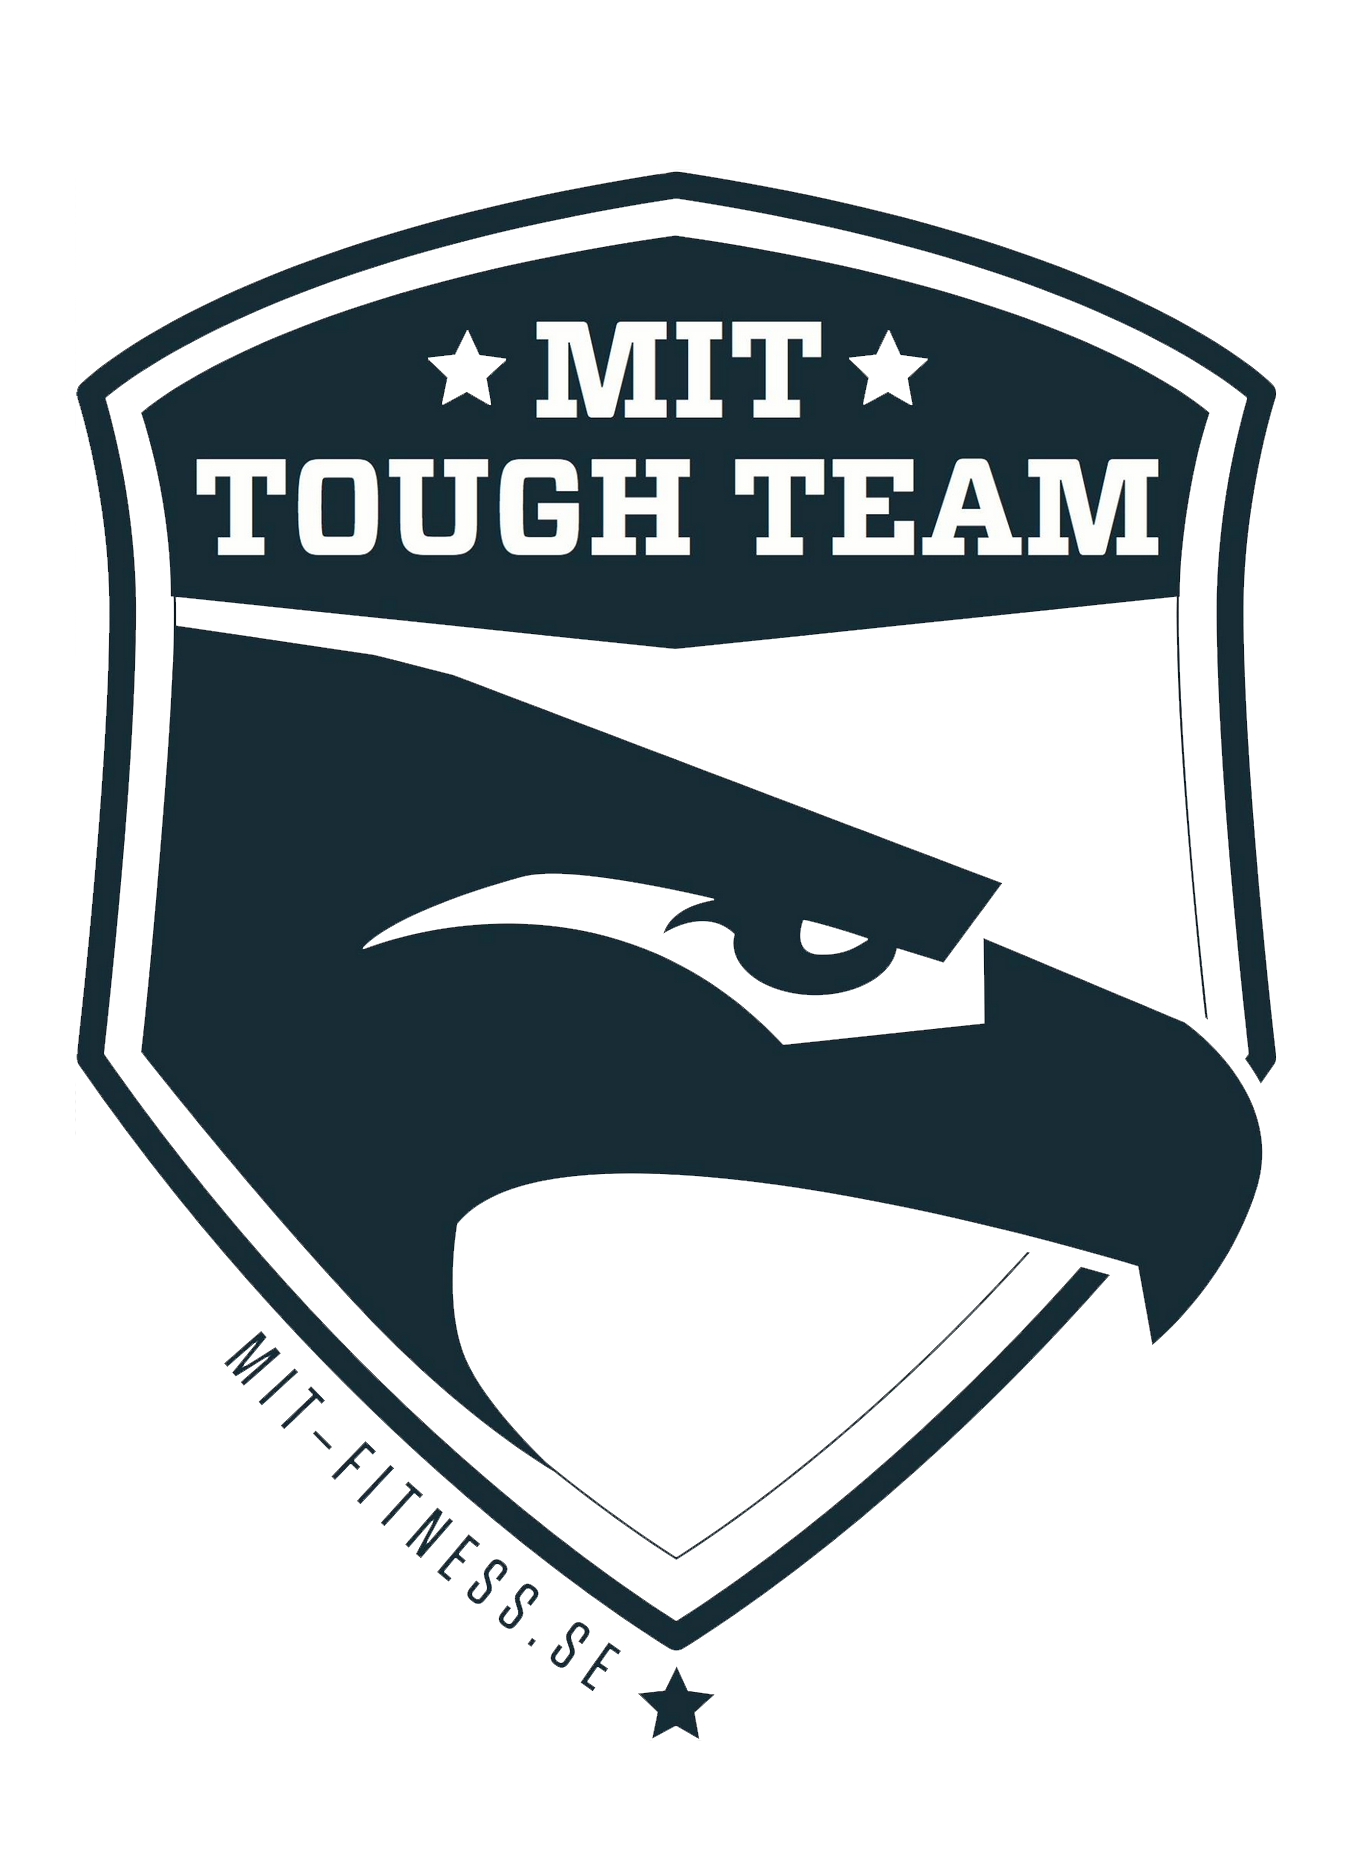 MIT tough team